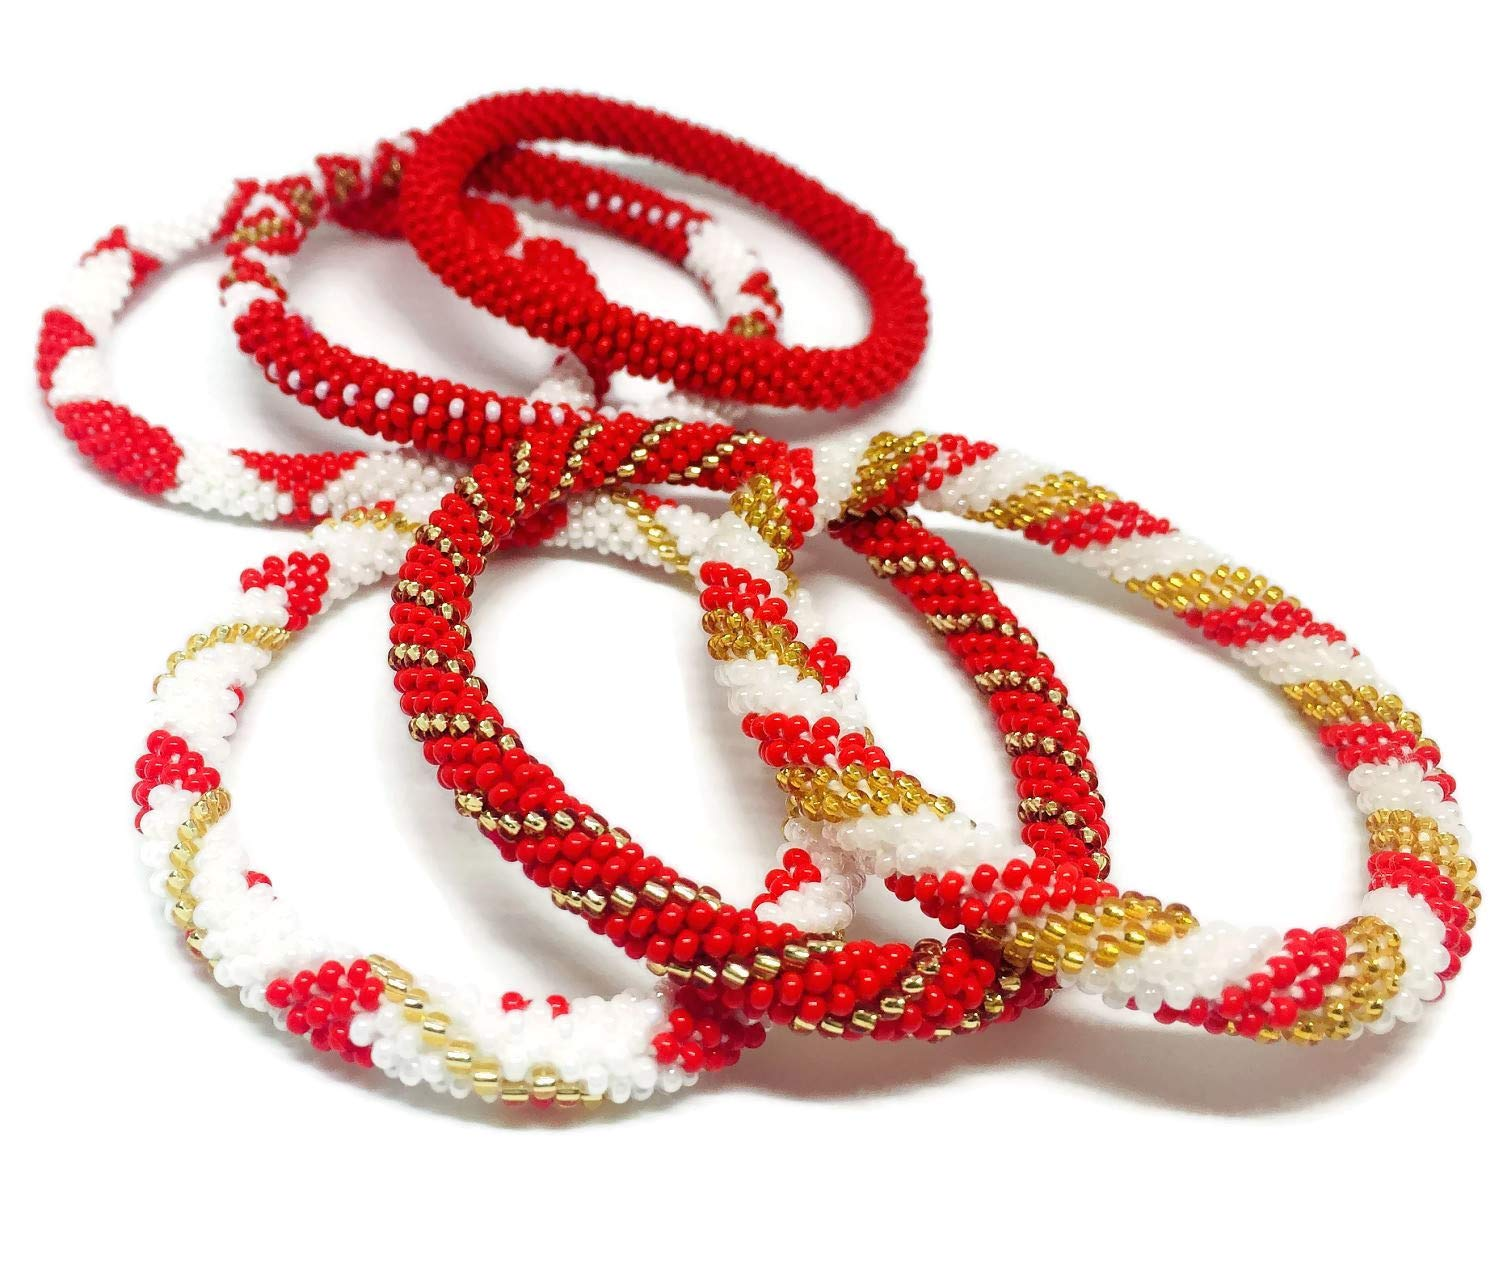 Kissed Karma Nepalese Roll on Hand Beaded Glass Seed Bead Bracelet. 6 Pcs Set. Premium Red Color Mix. (Red) by Kissed Karma (Image #2)